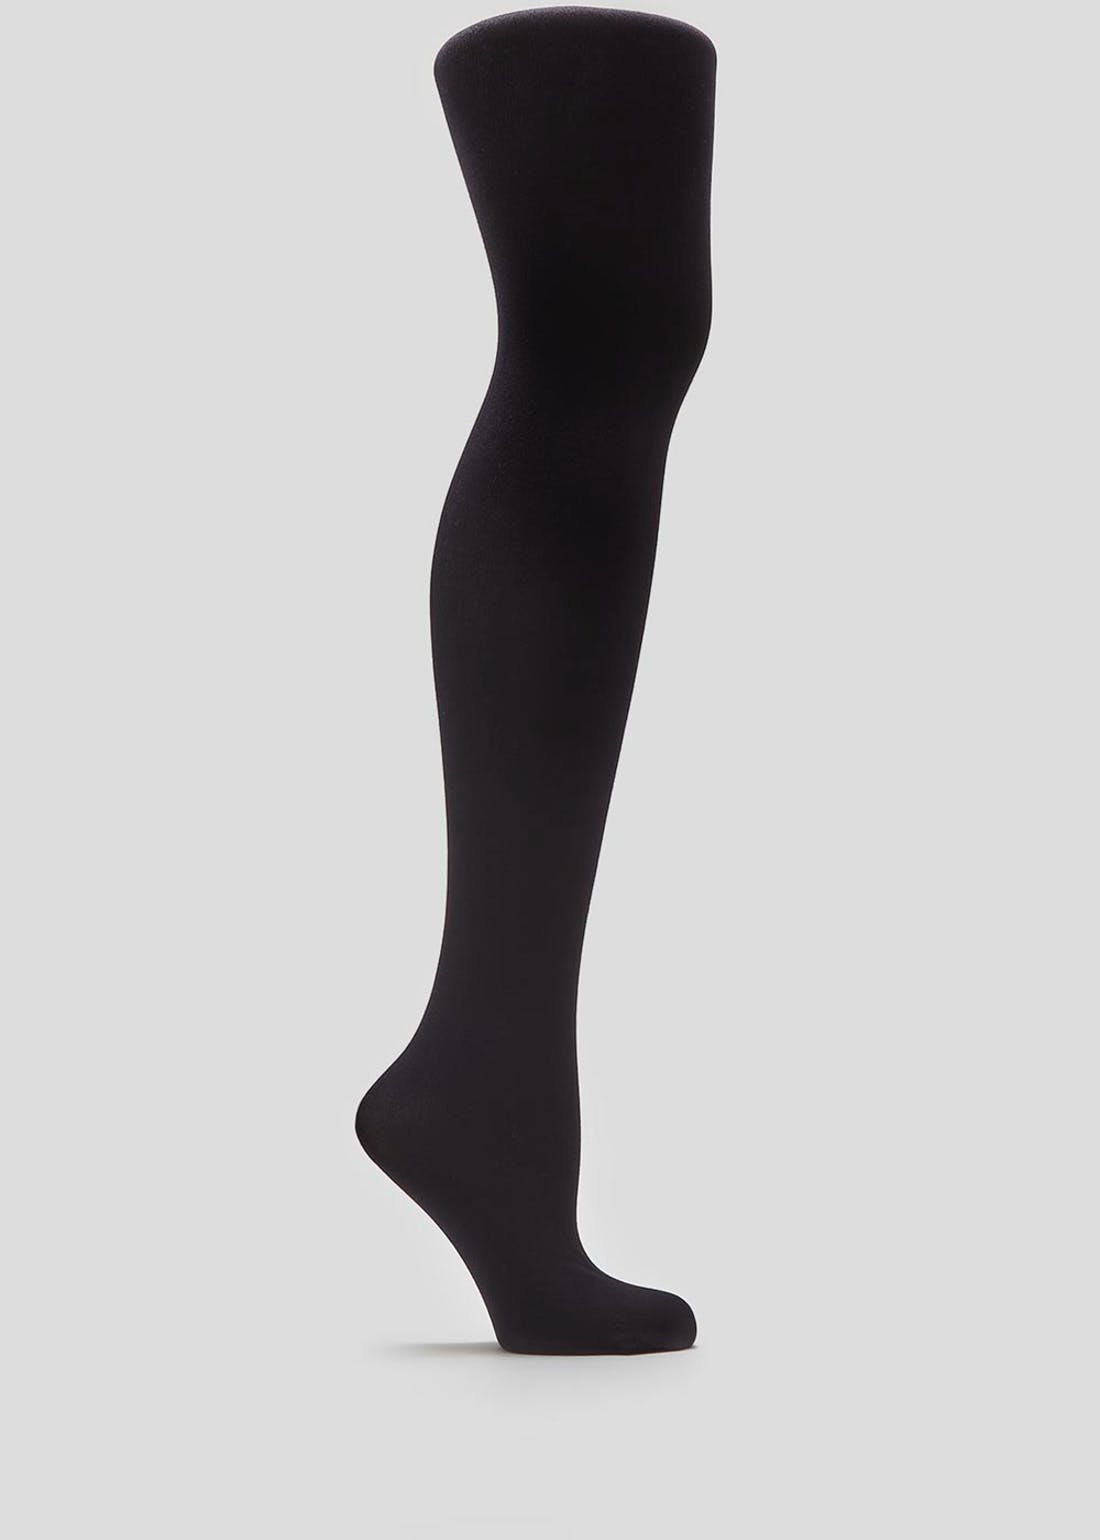 300 Denier Tights